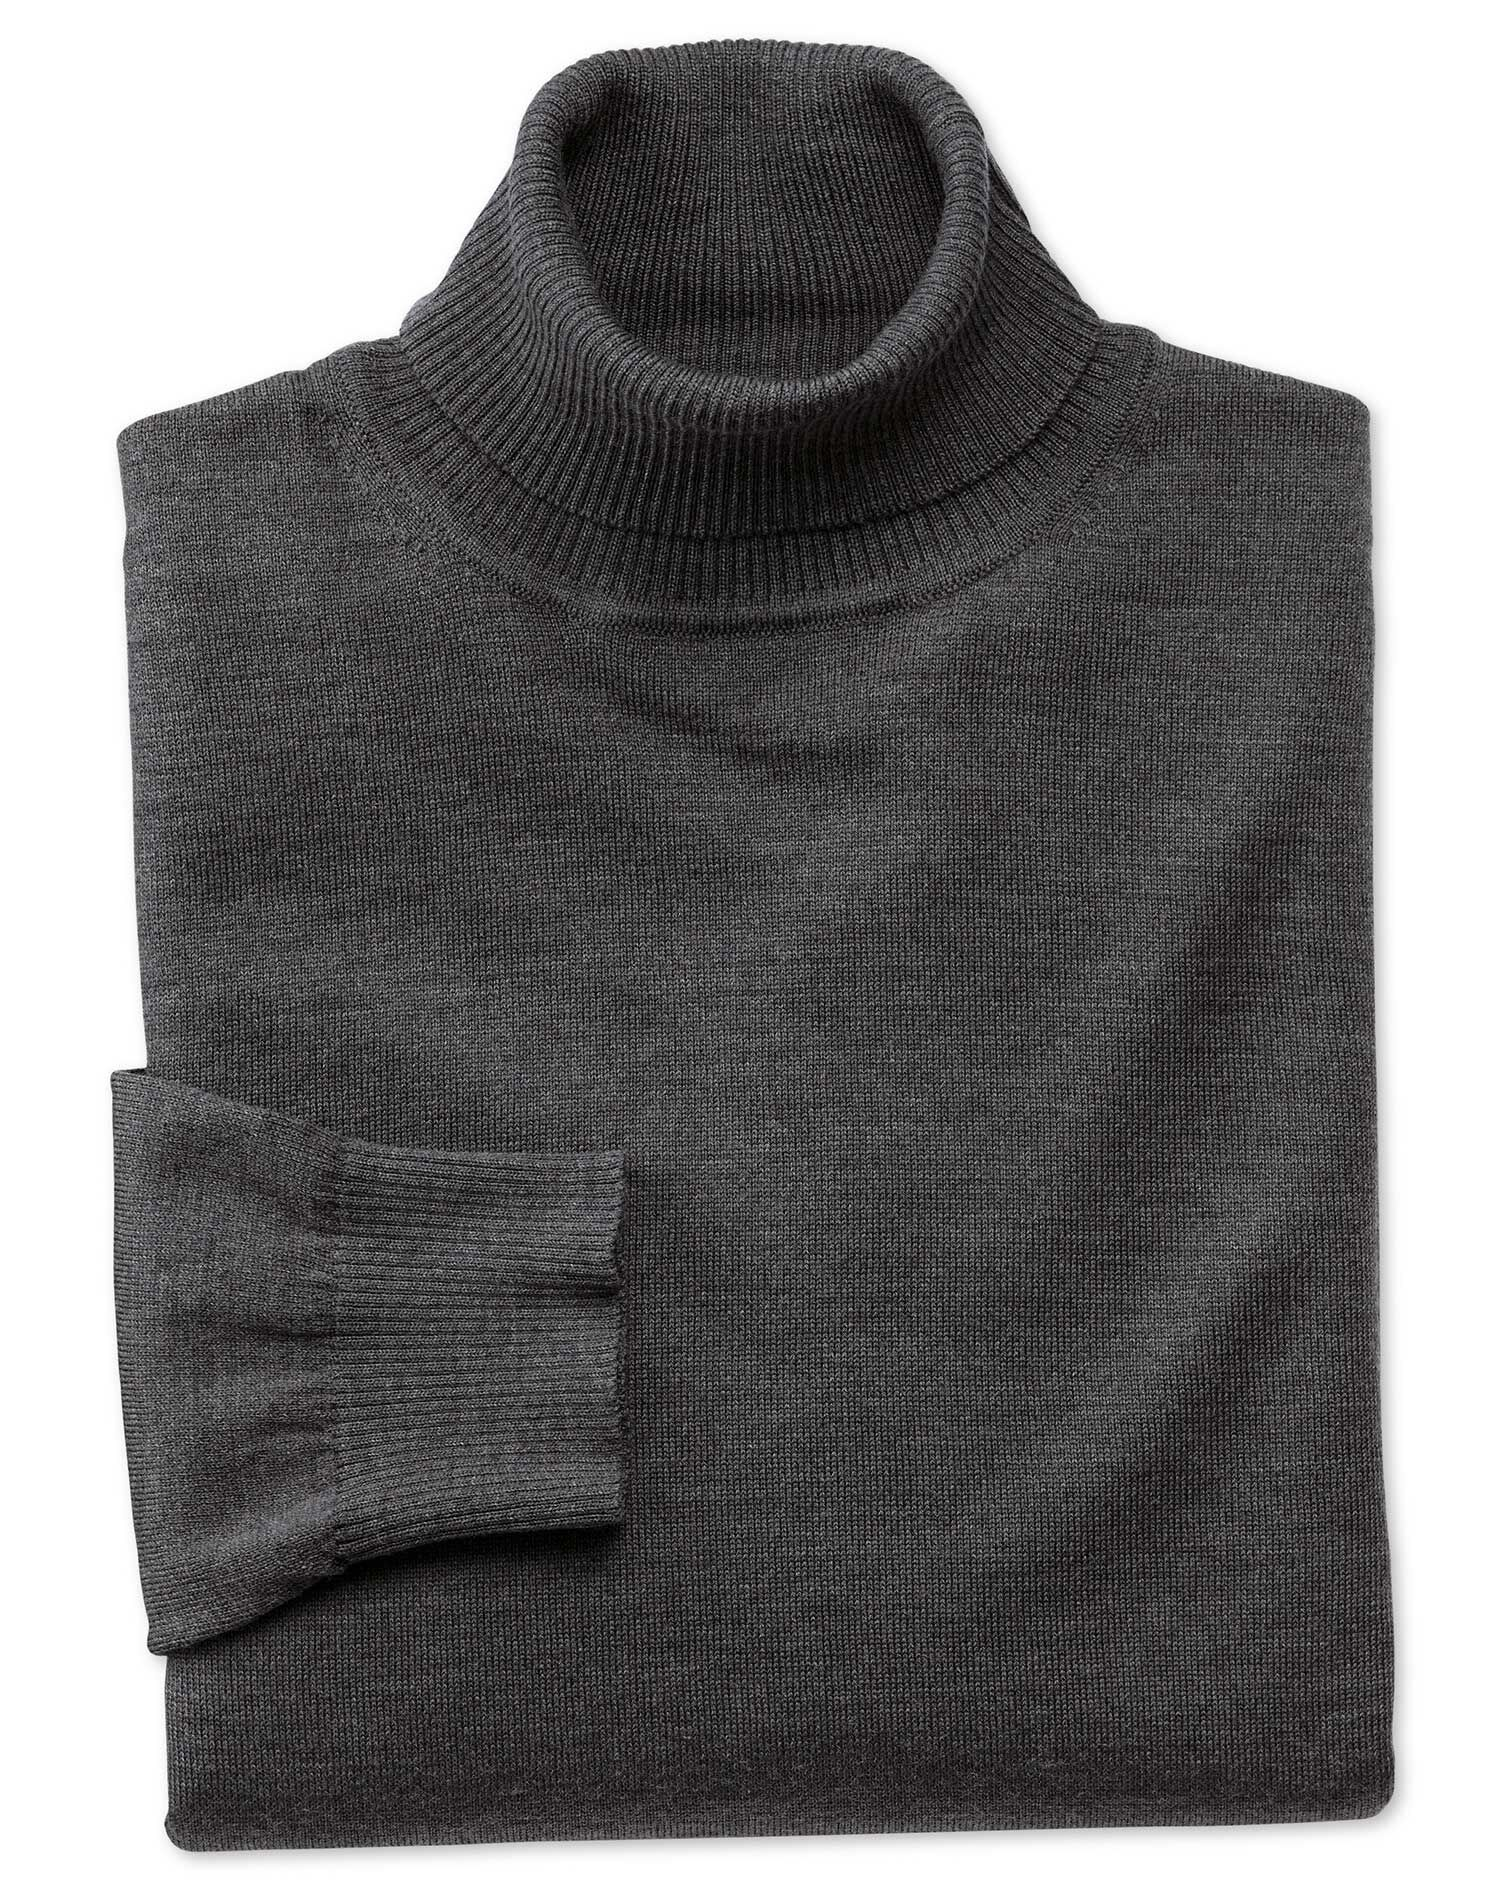 Charcoal Merino Wool Roll Neck Jumper Size Small by Charles Tyrwhitt